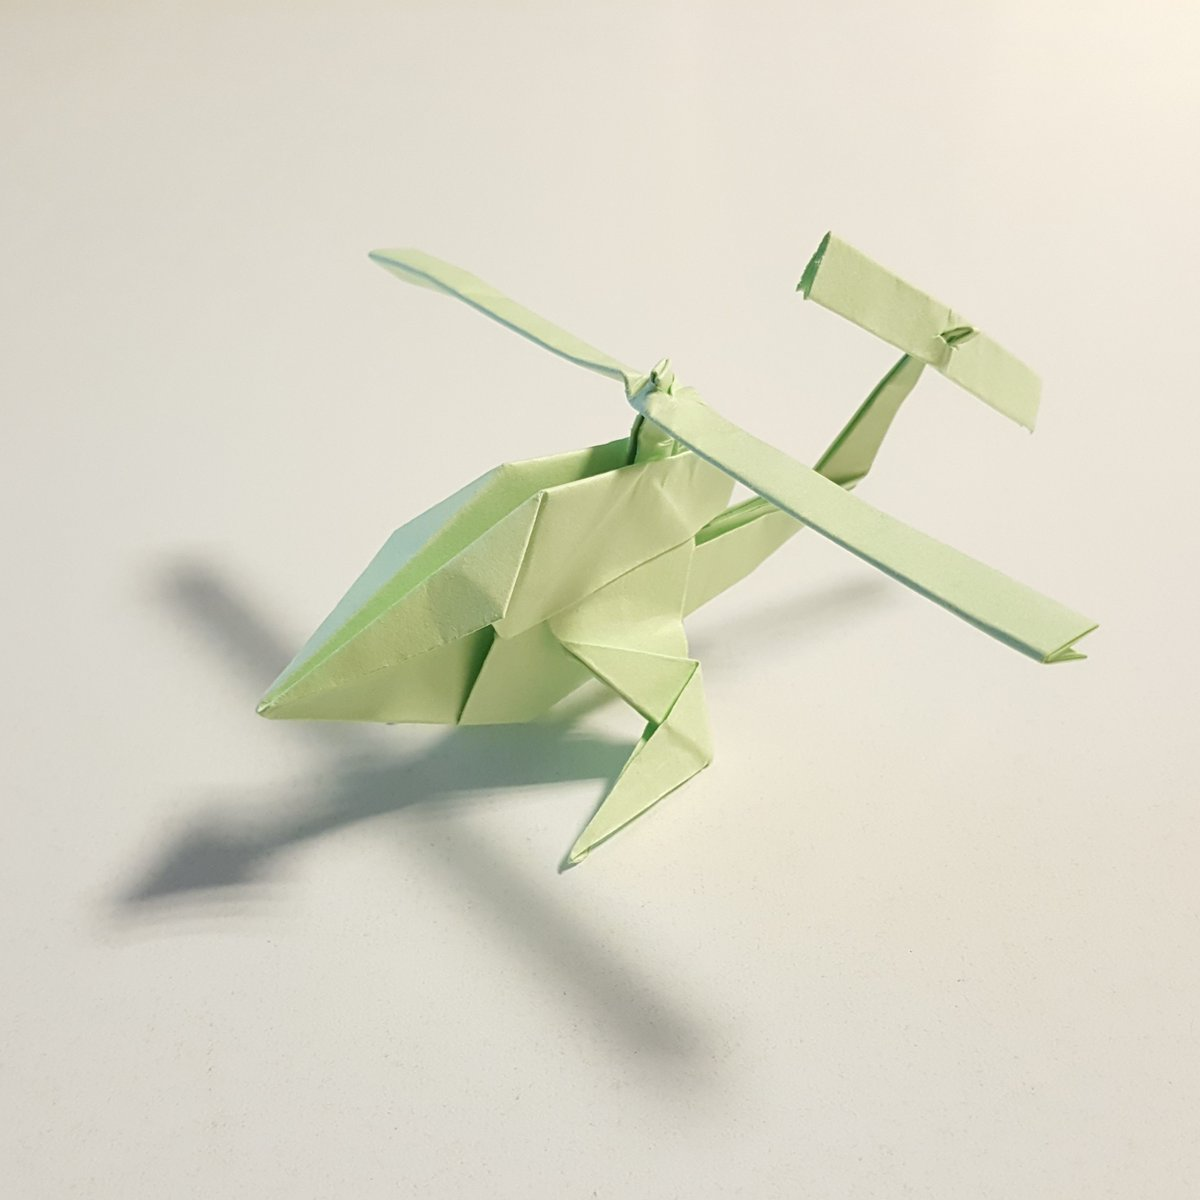 Origami - How to make a Paper Helicopter | Origami helicopter ... | 1200x1200